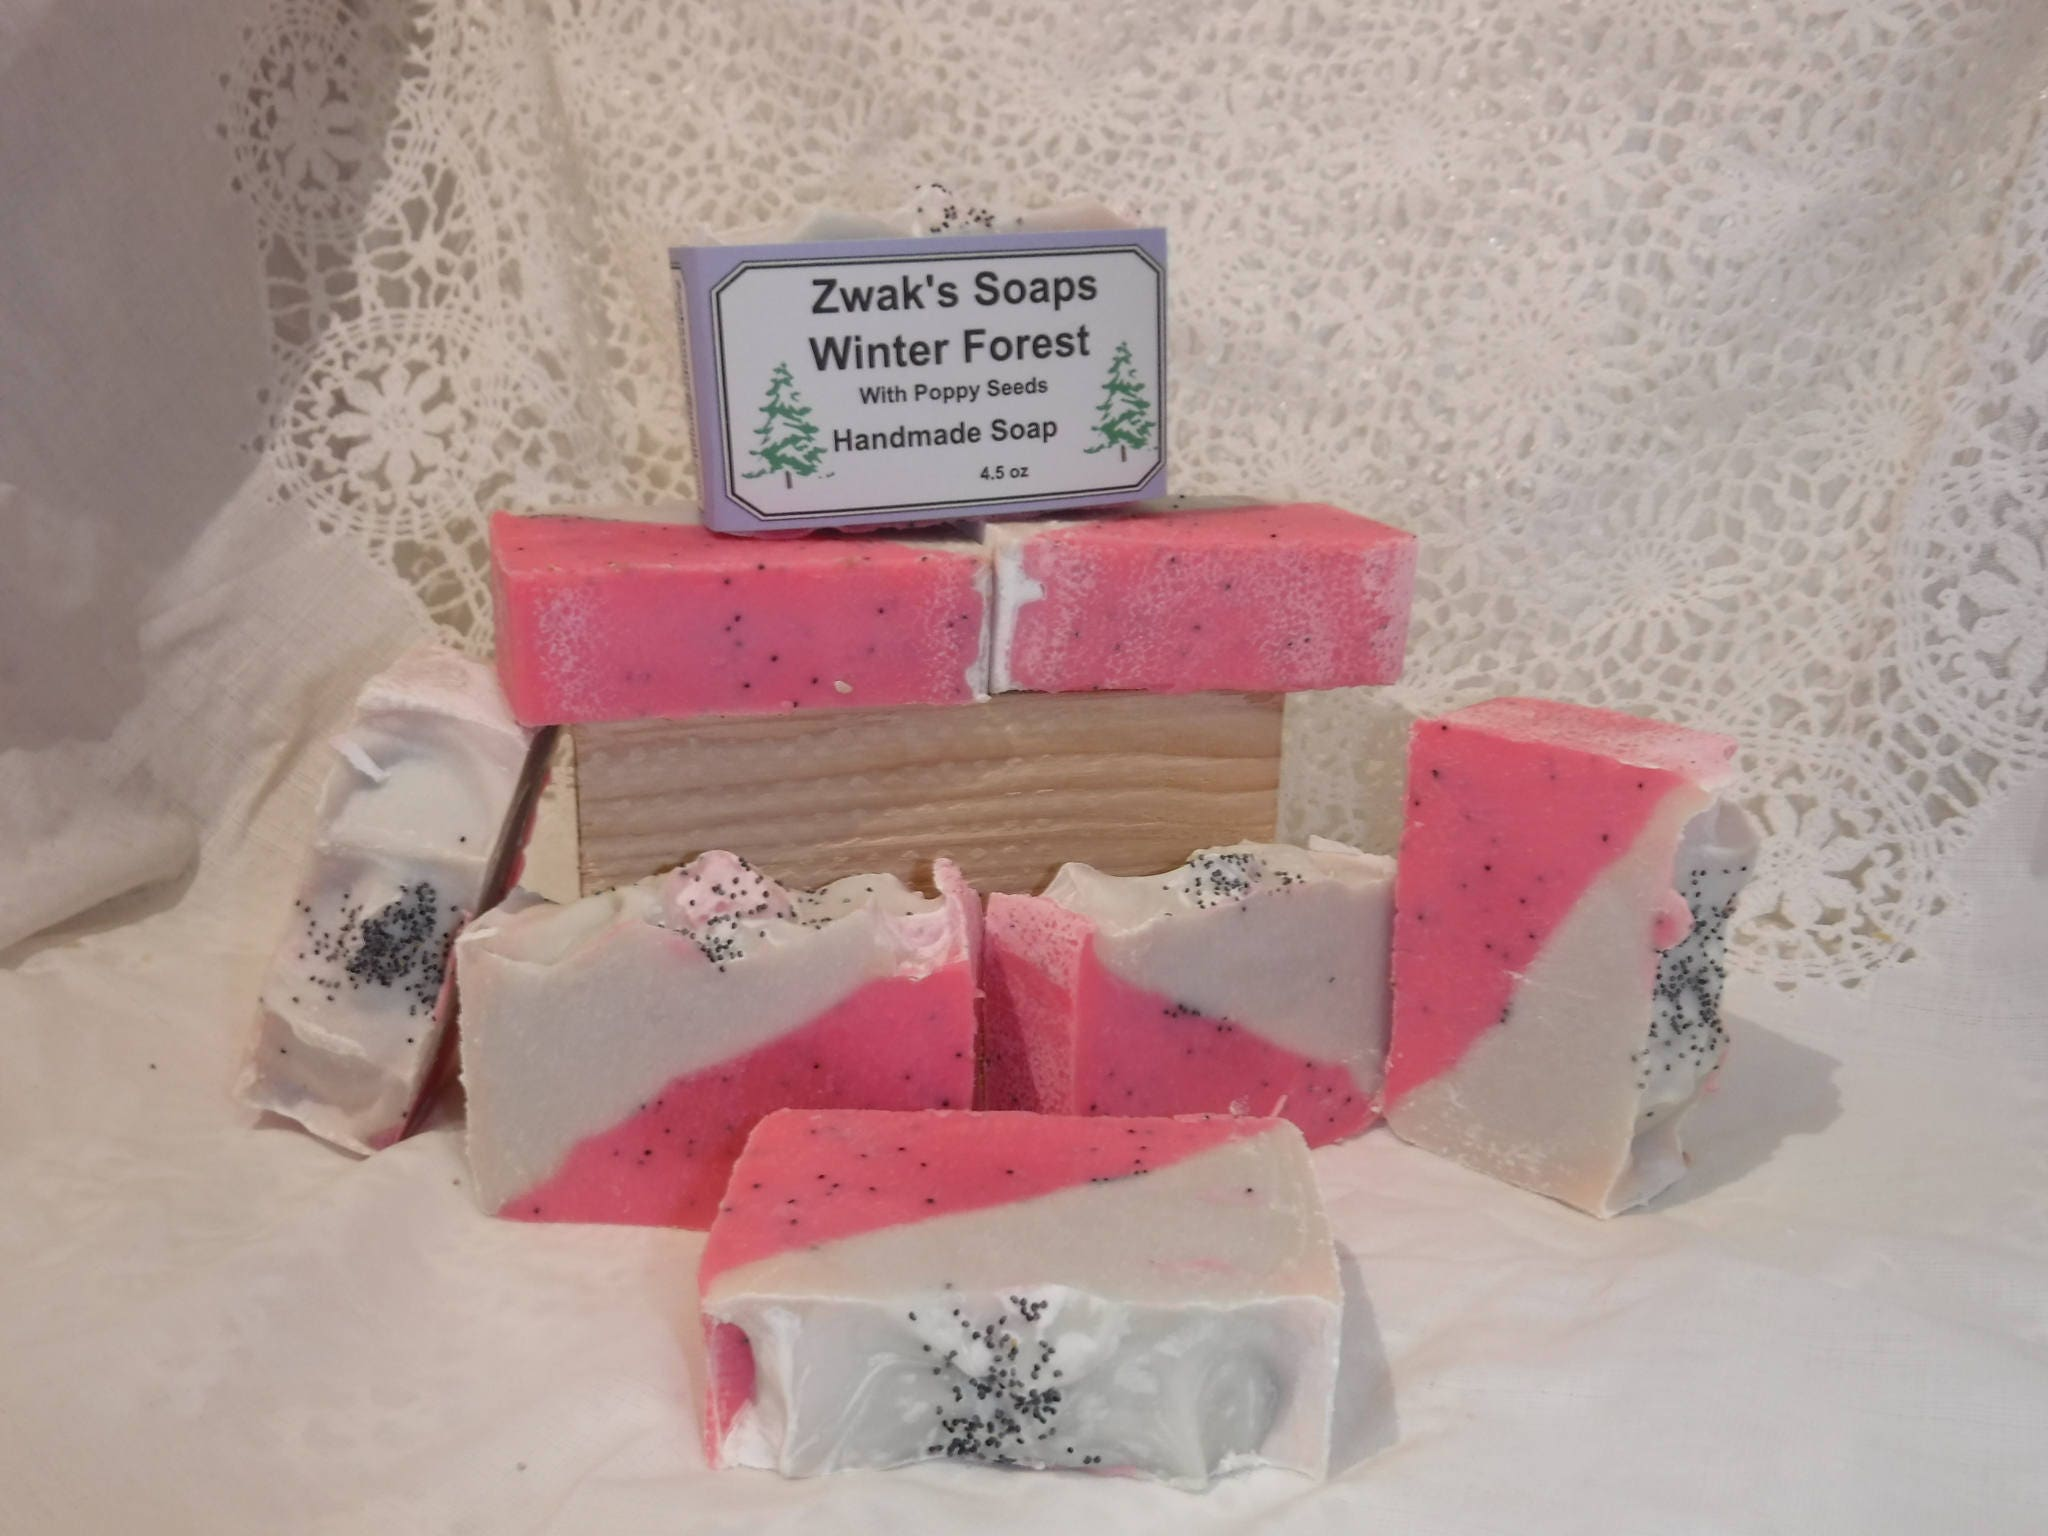 Winter Forest Handcrafted Soap with Poppy Seeds Shea Butter